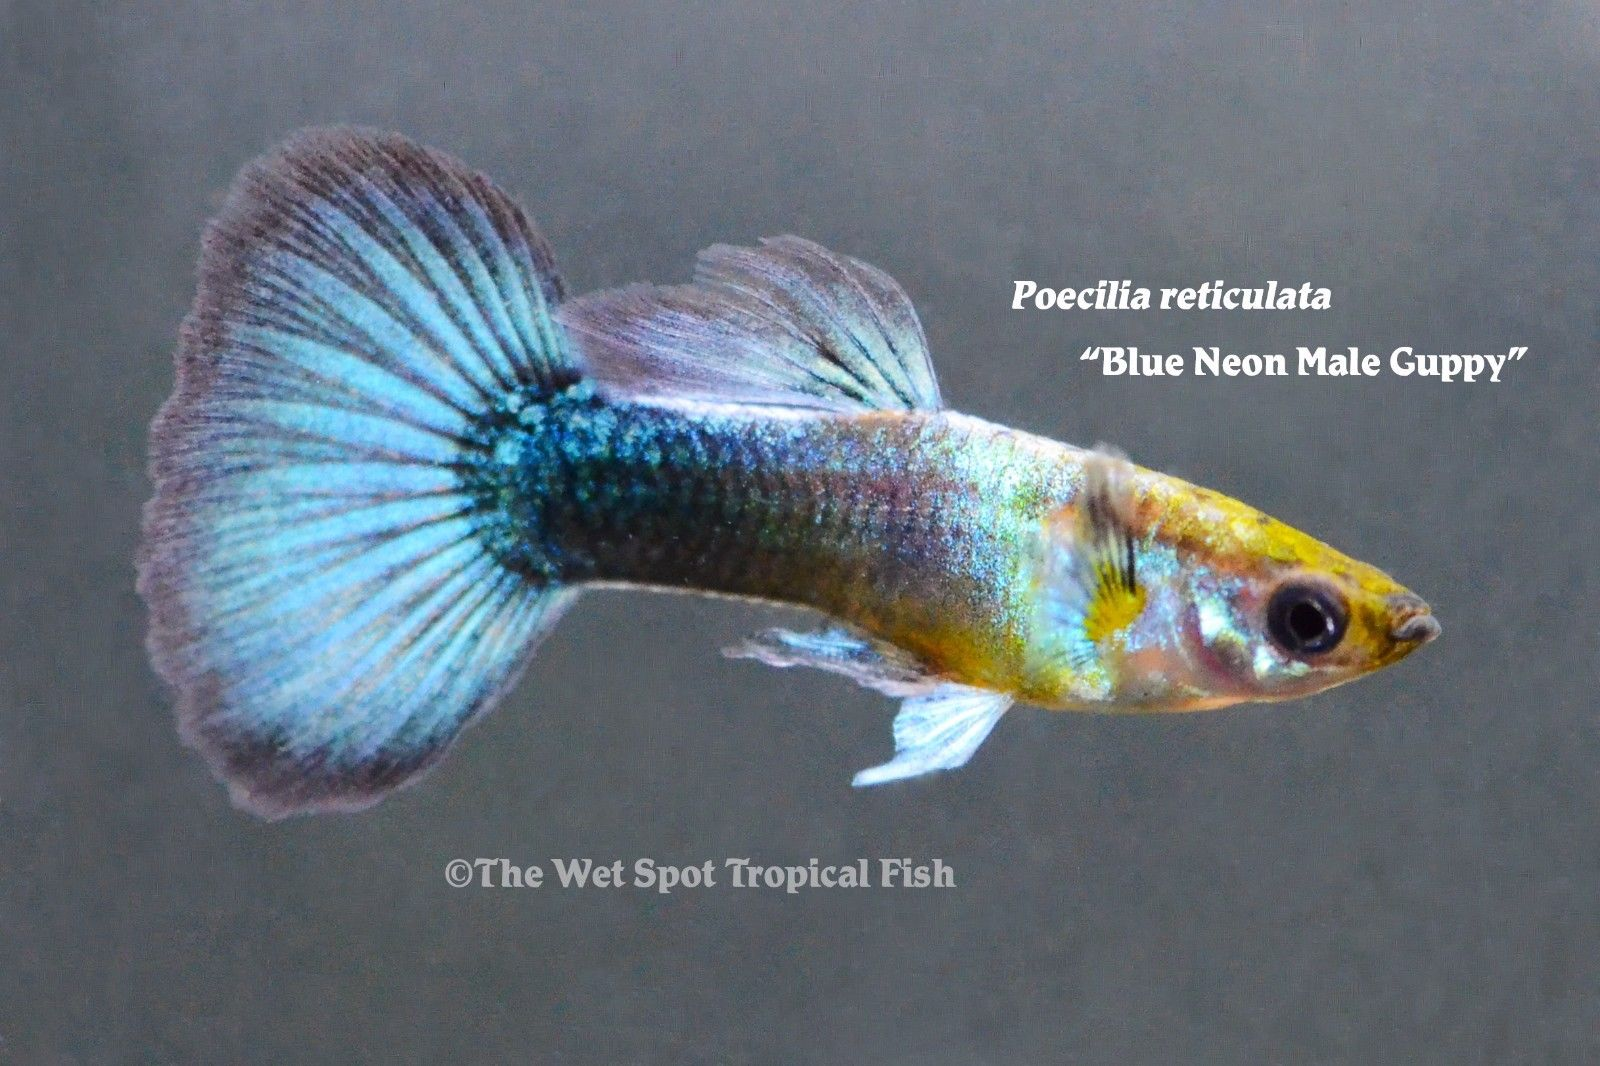 Blue Neon Guppy photo Wet Spot Tropical